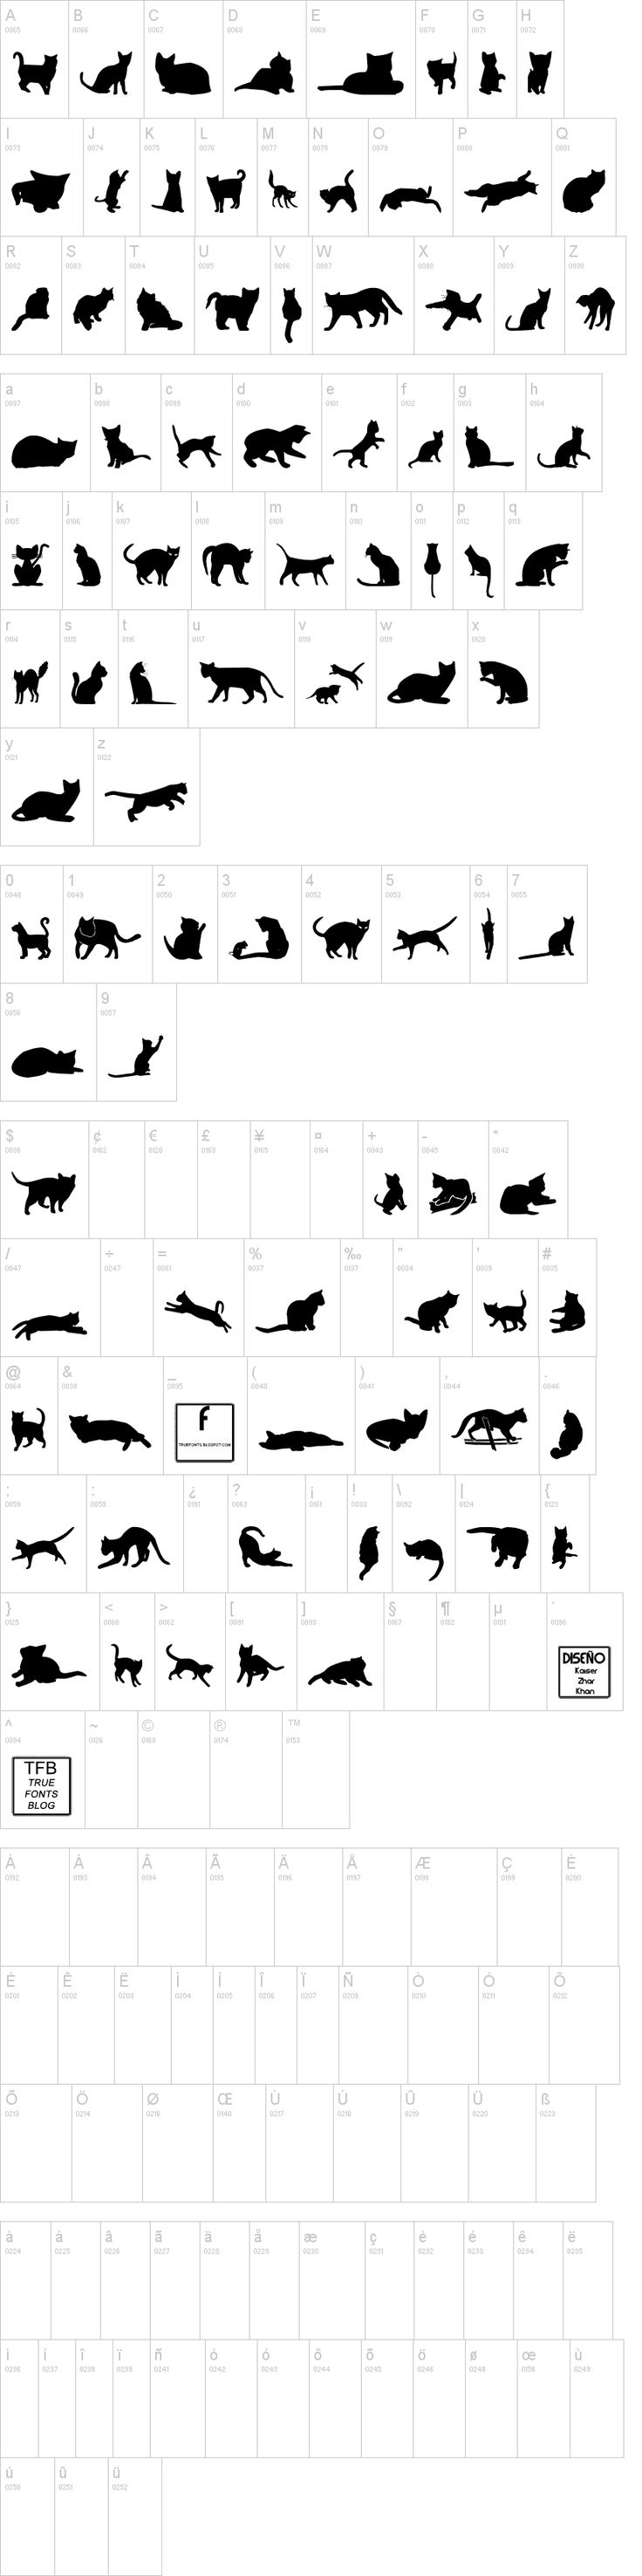 Free font ☺:Kitty Cats TFB